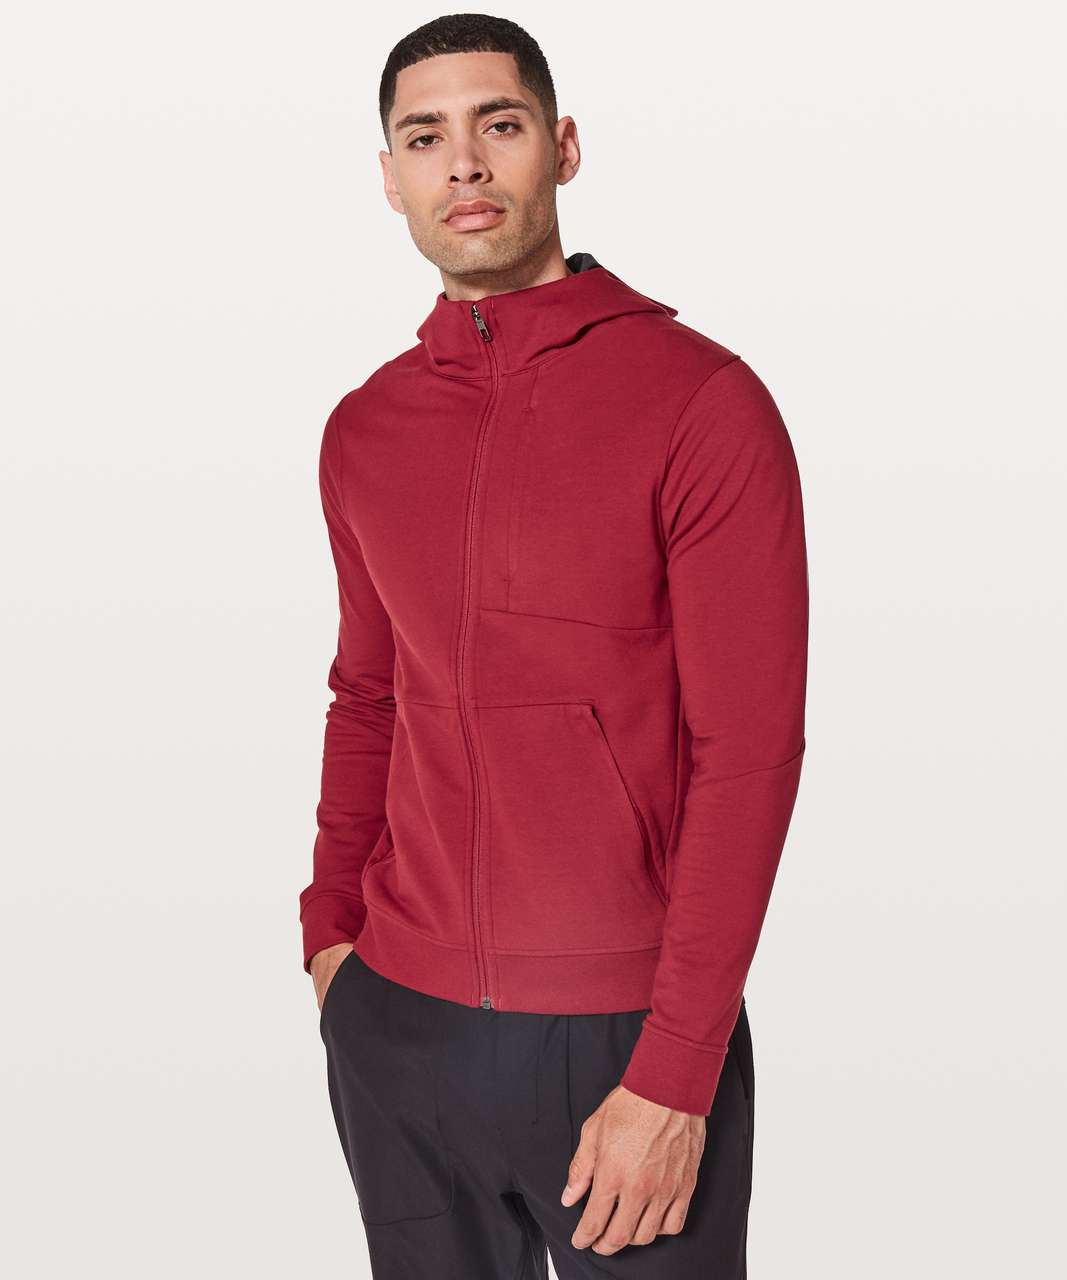 Lululemon City Sweat Zip Hoodie - Oxblood